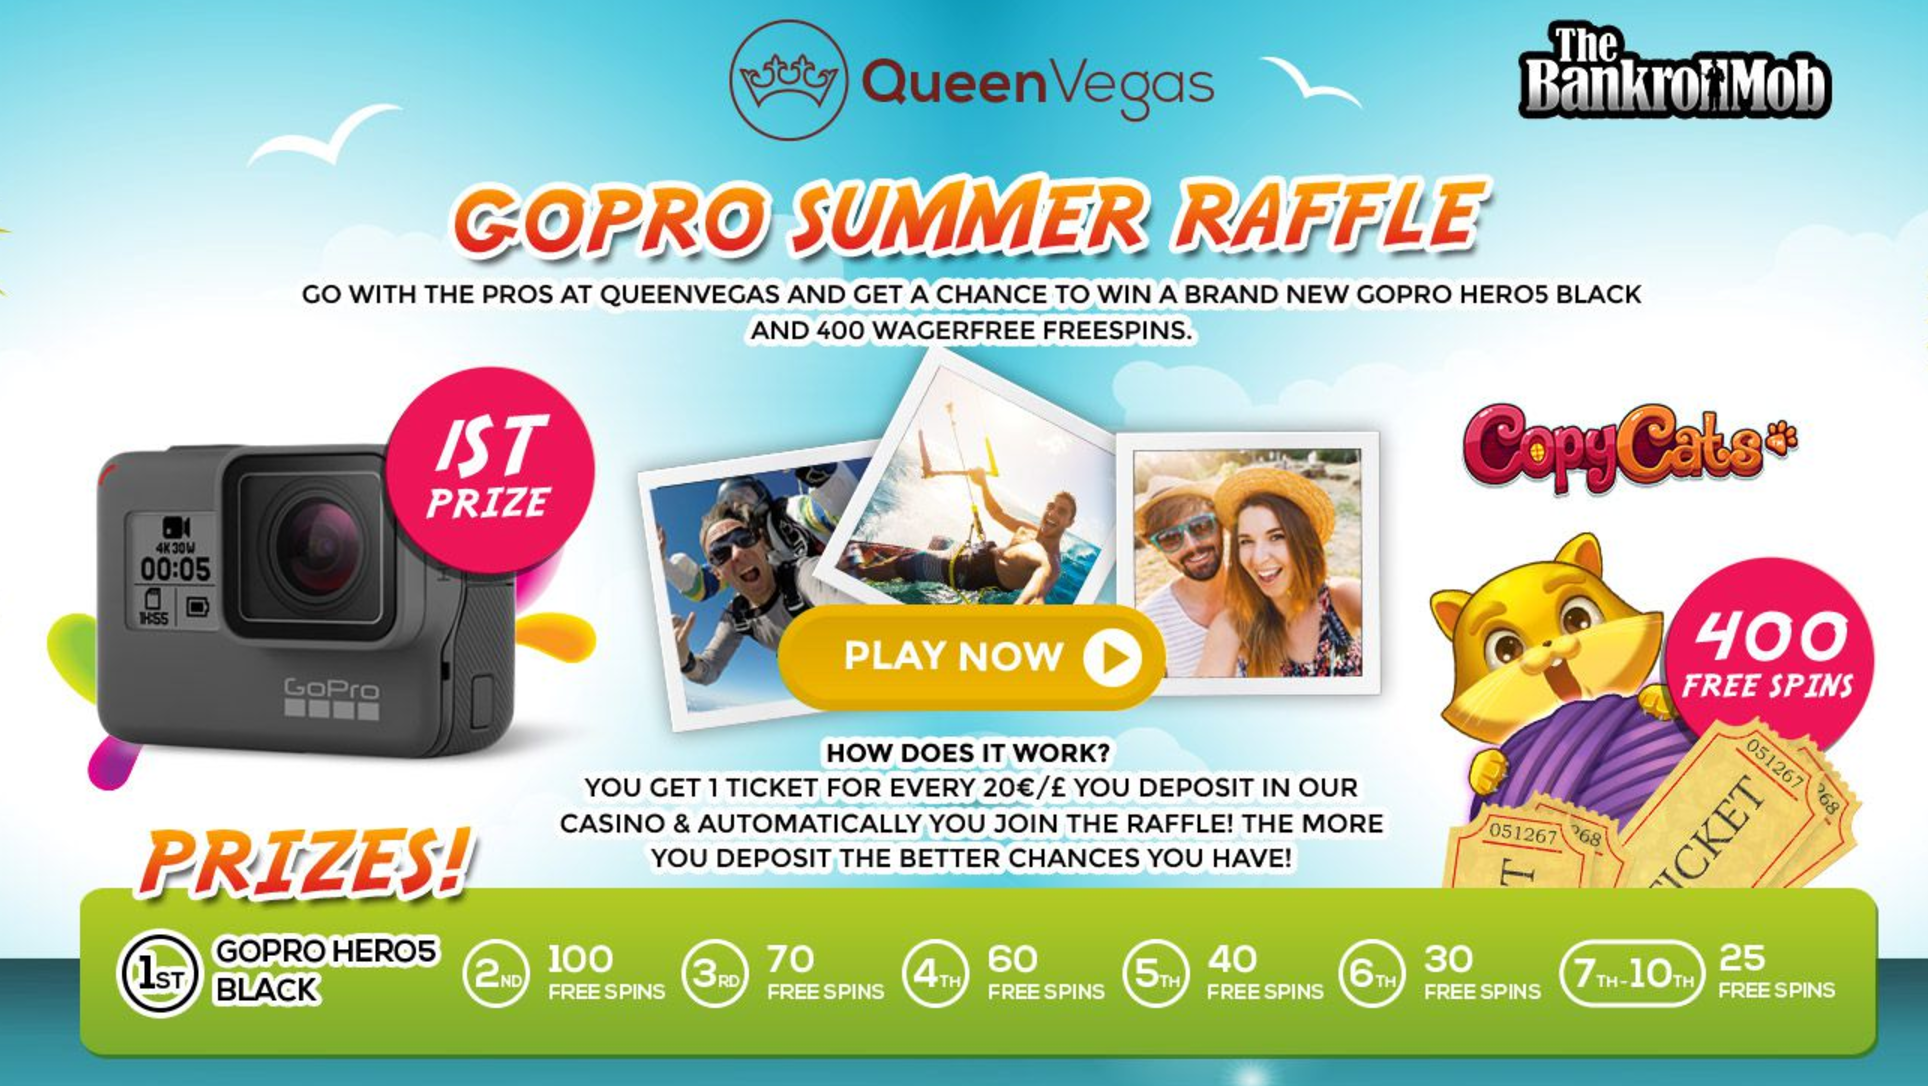 BankrollMob Exclusive: QueenVegas Summer Raffle